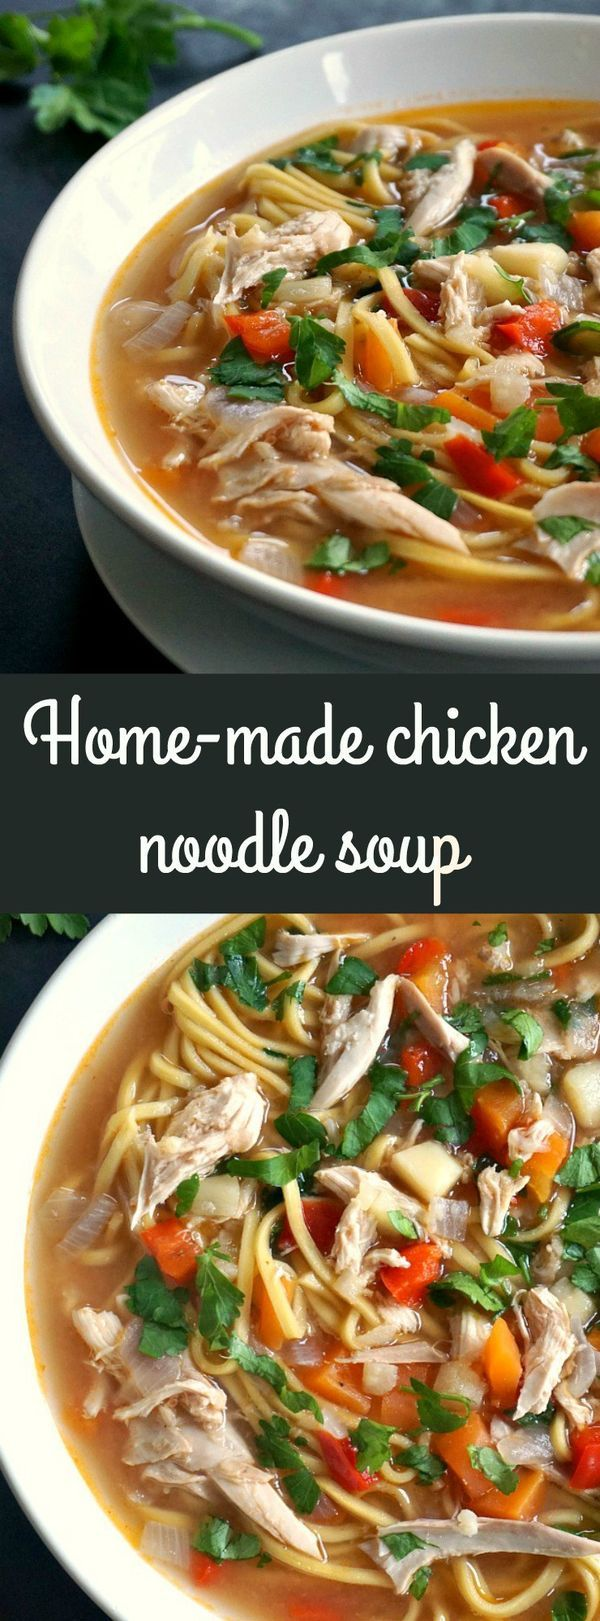 Home-made chicken noodle soup, a healthy recipe for the whole family and the best natural remedy against cold and flu. #NationalChickenNoodleSoupDay